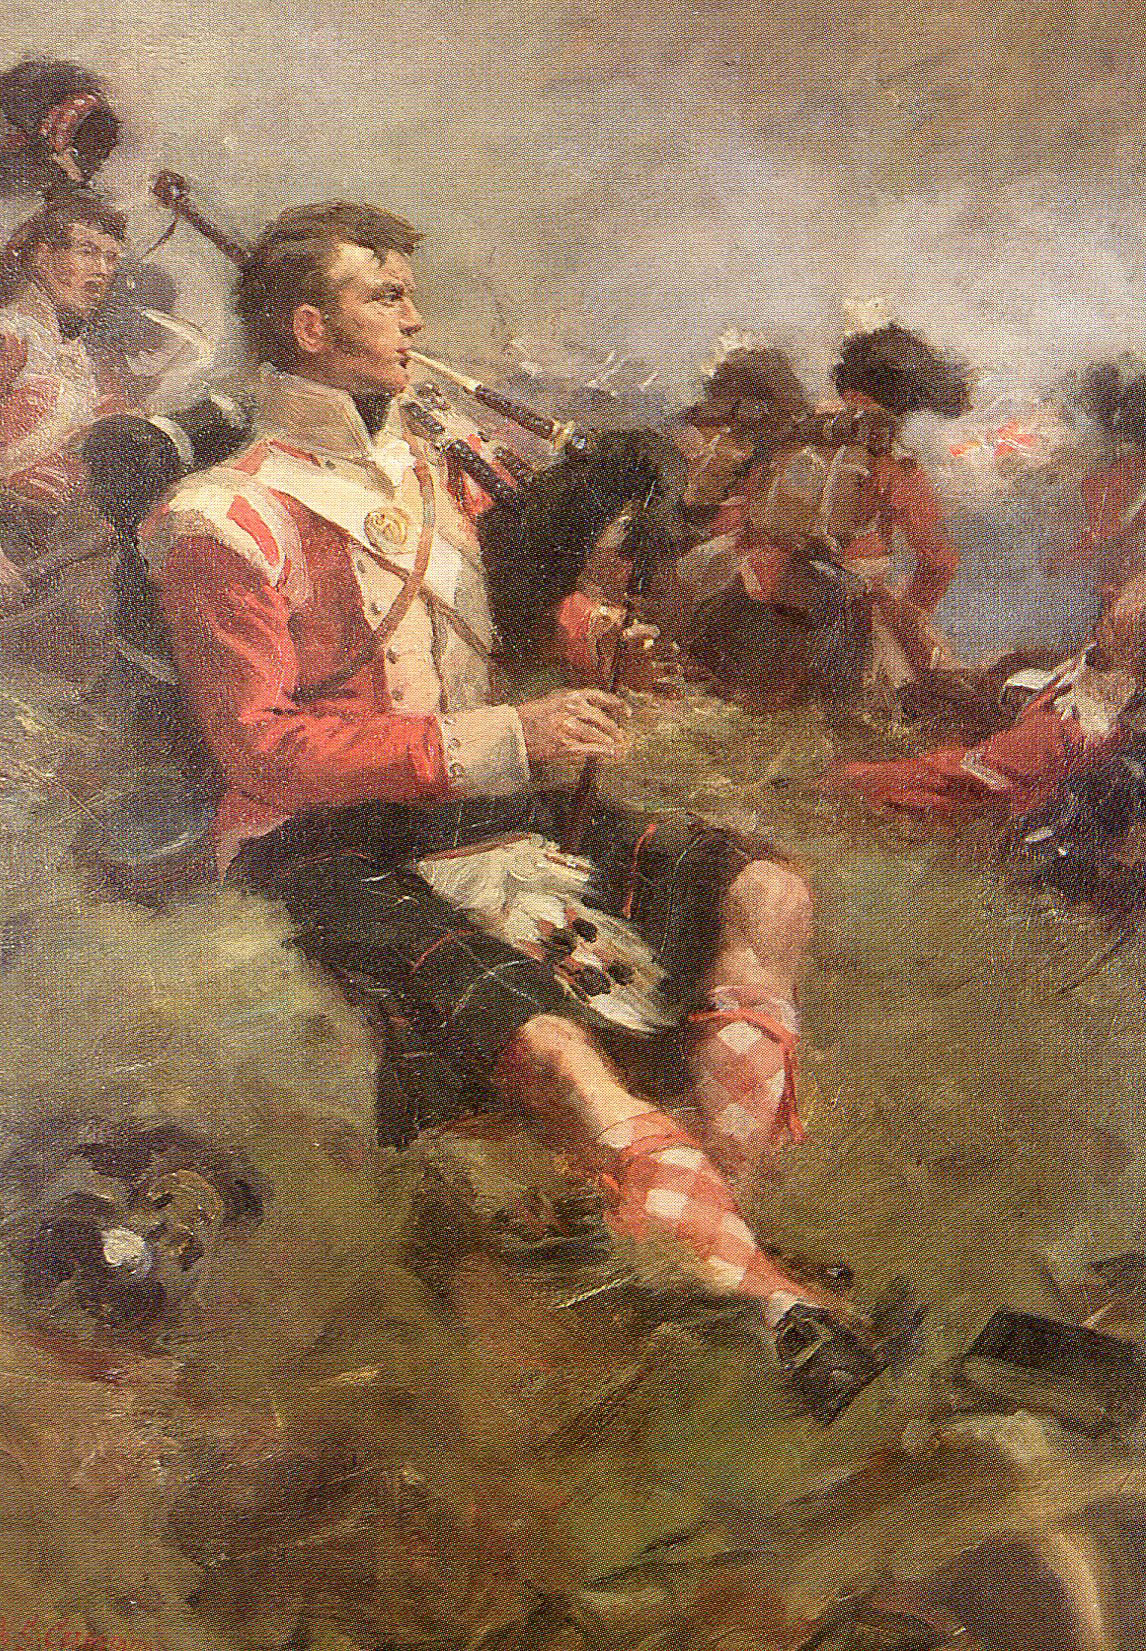 Piper Clark of 71st Highland Light Infantry at the Battle of Vimeiro on 21st August 1808 in the Peninsular War: picture by William Skeoch Cumming